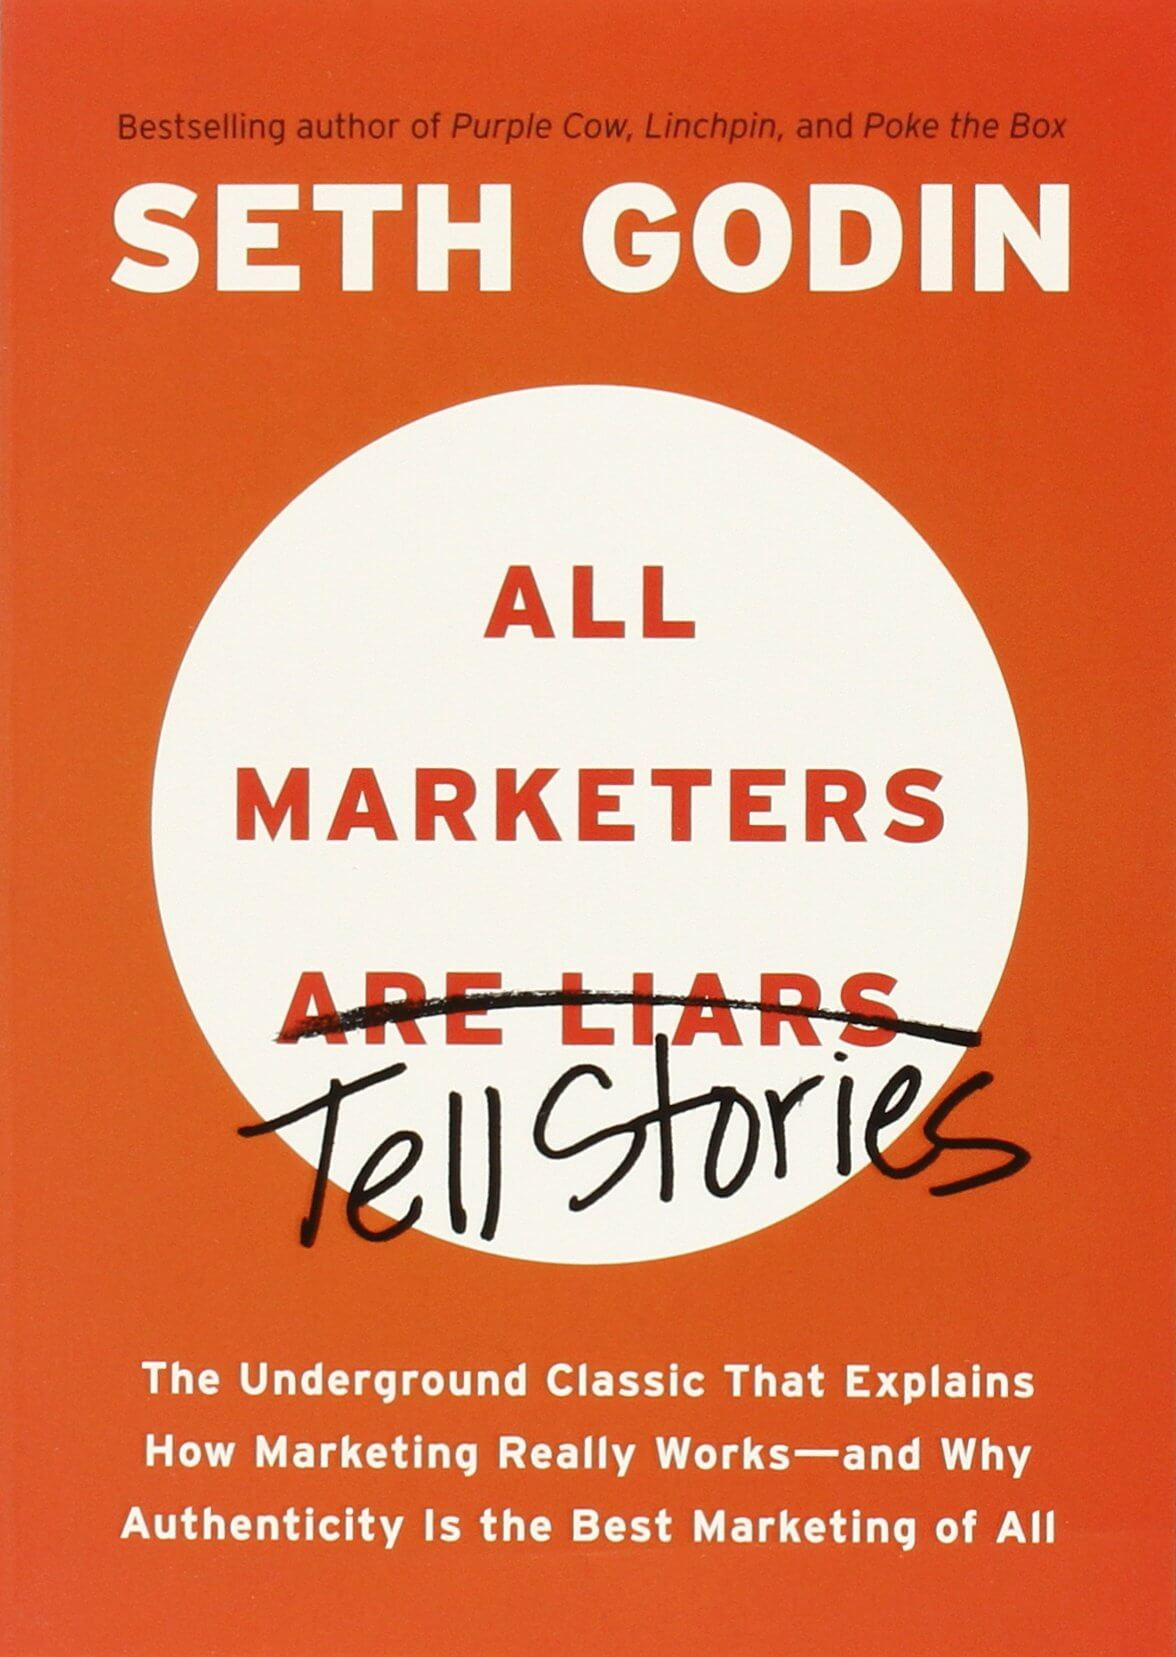 Book Review:  All Marketers are Liars Tell Stories